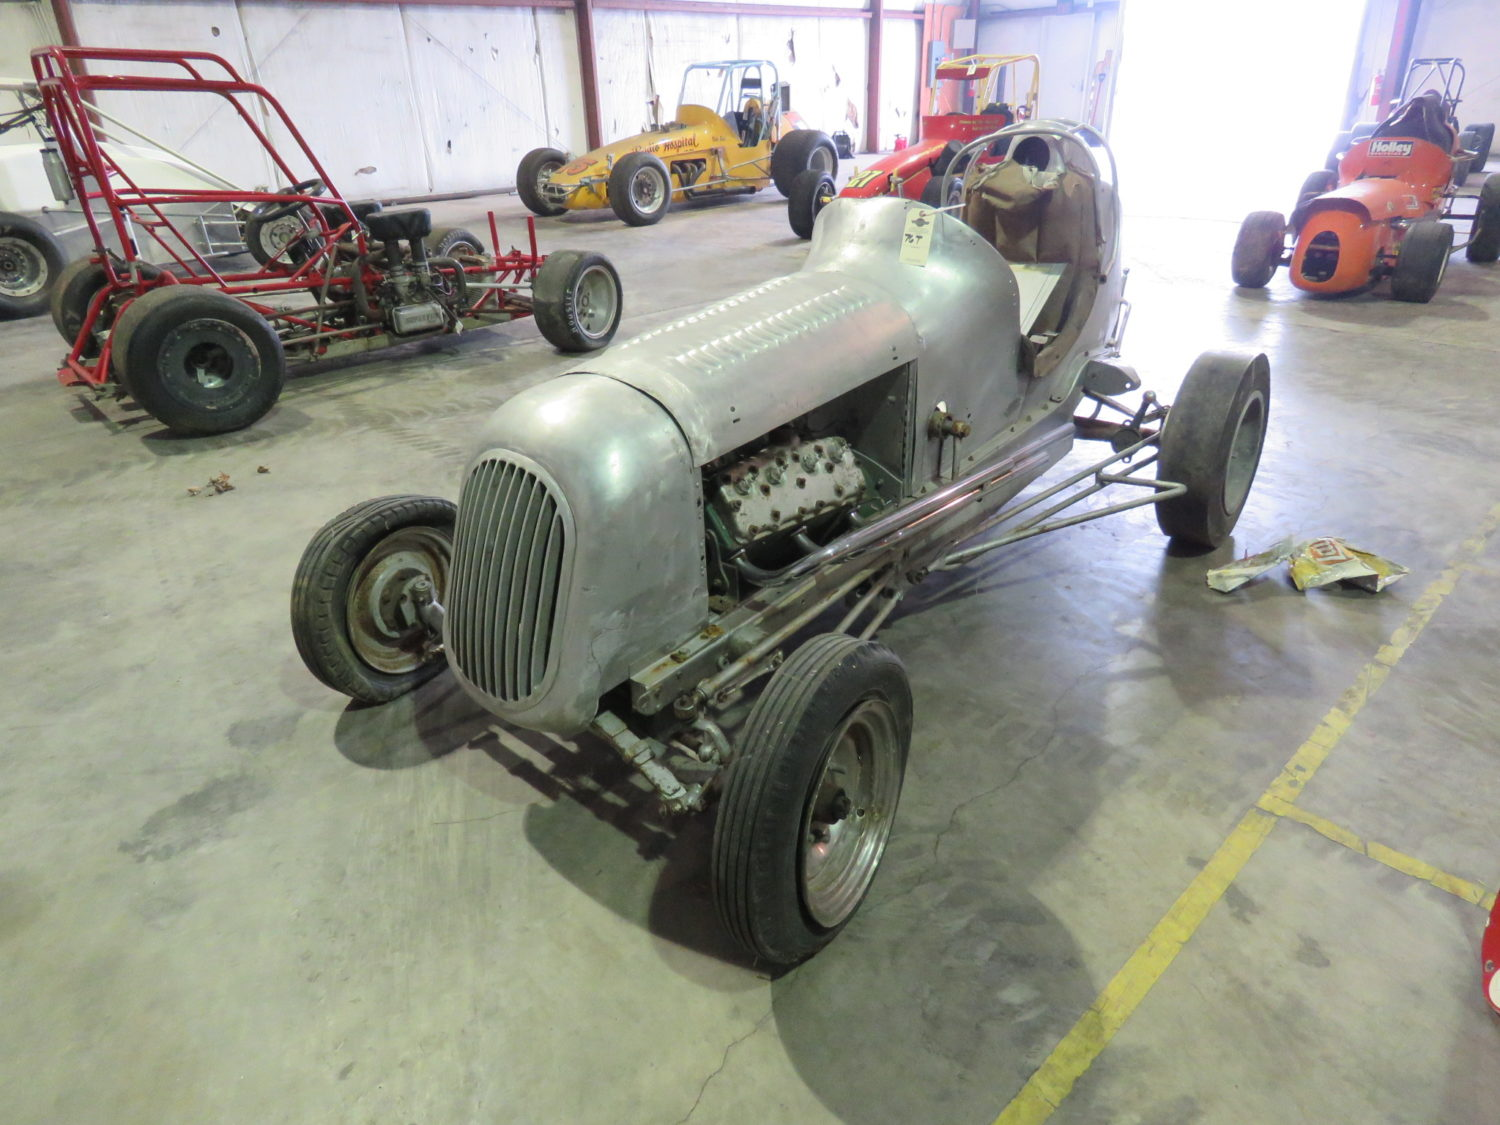 Amazing Vintage Motorcycles, Race Cars, Collector Cars & Parts! The JAB Collection - image 3